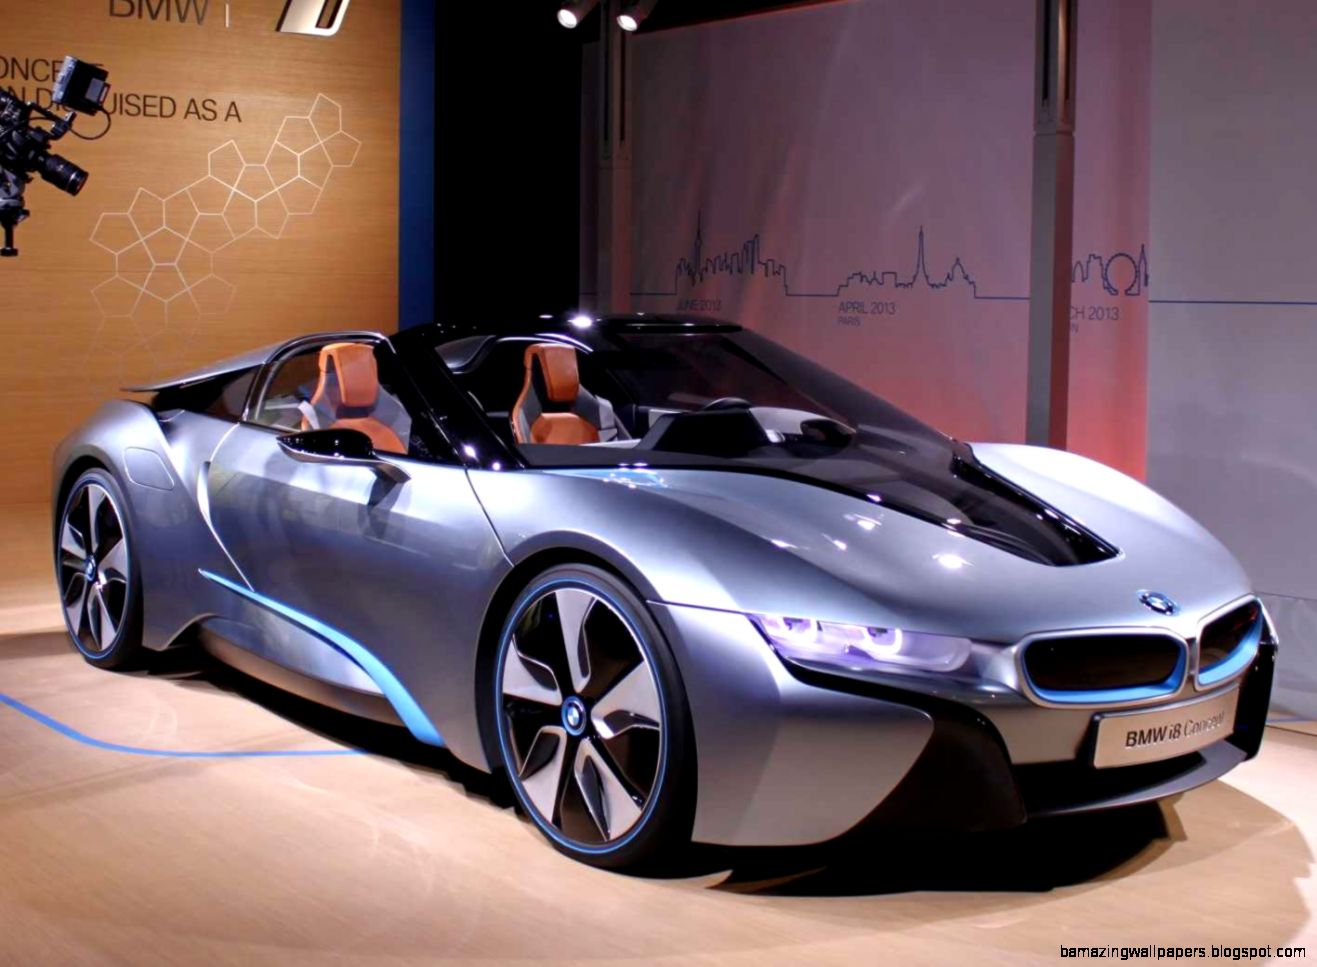 BMW i8 and i3 Electric Car Concepts   Business Insider